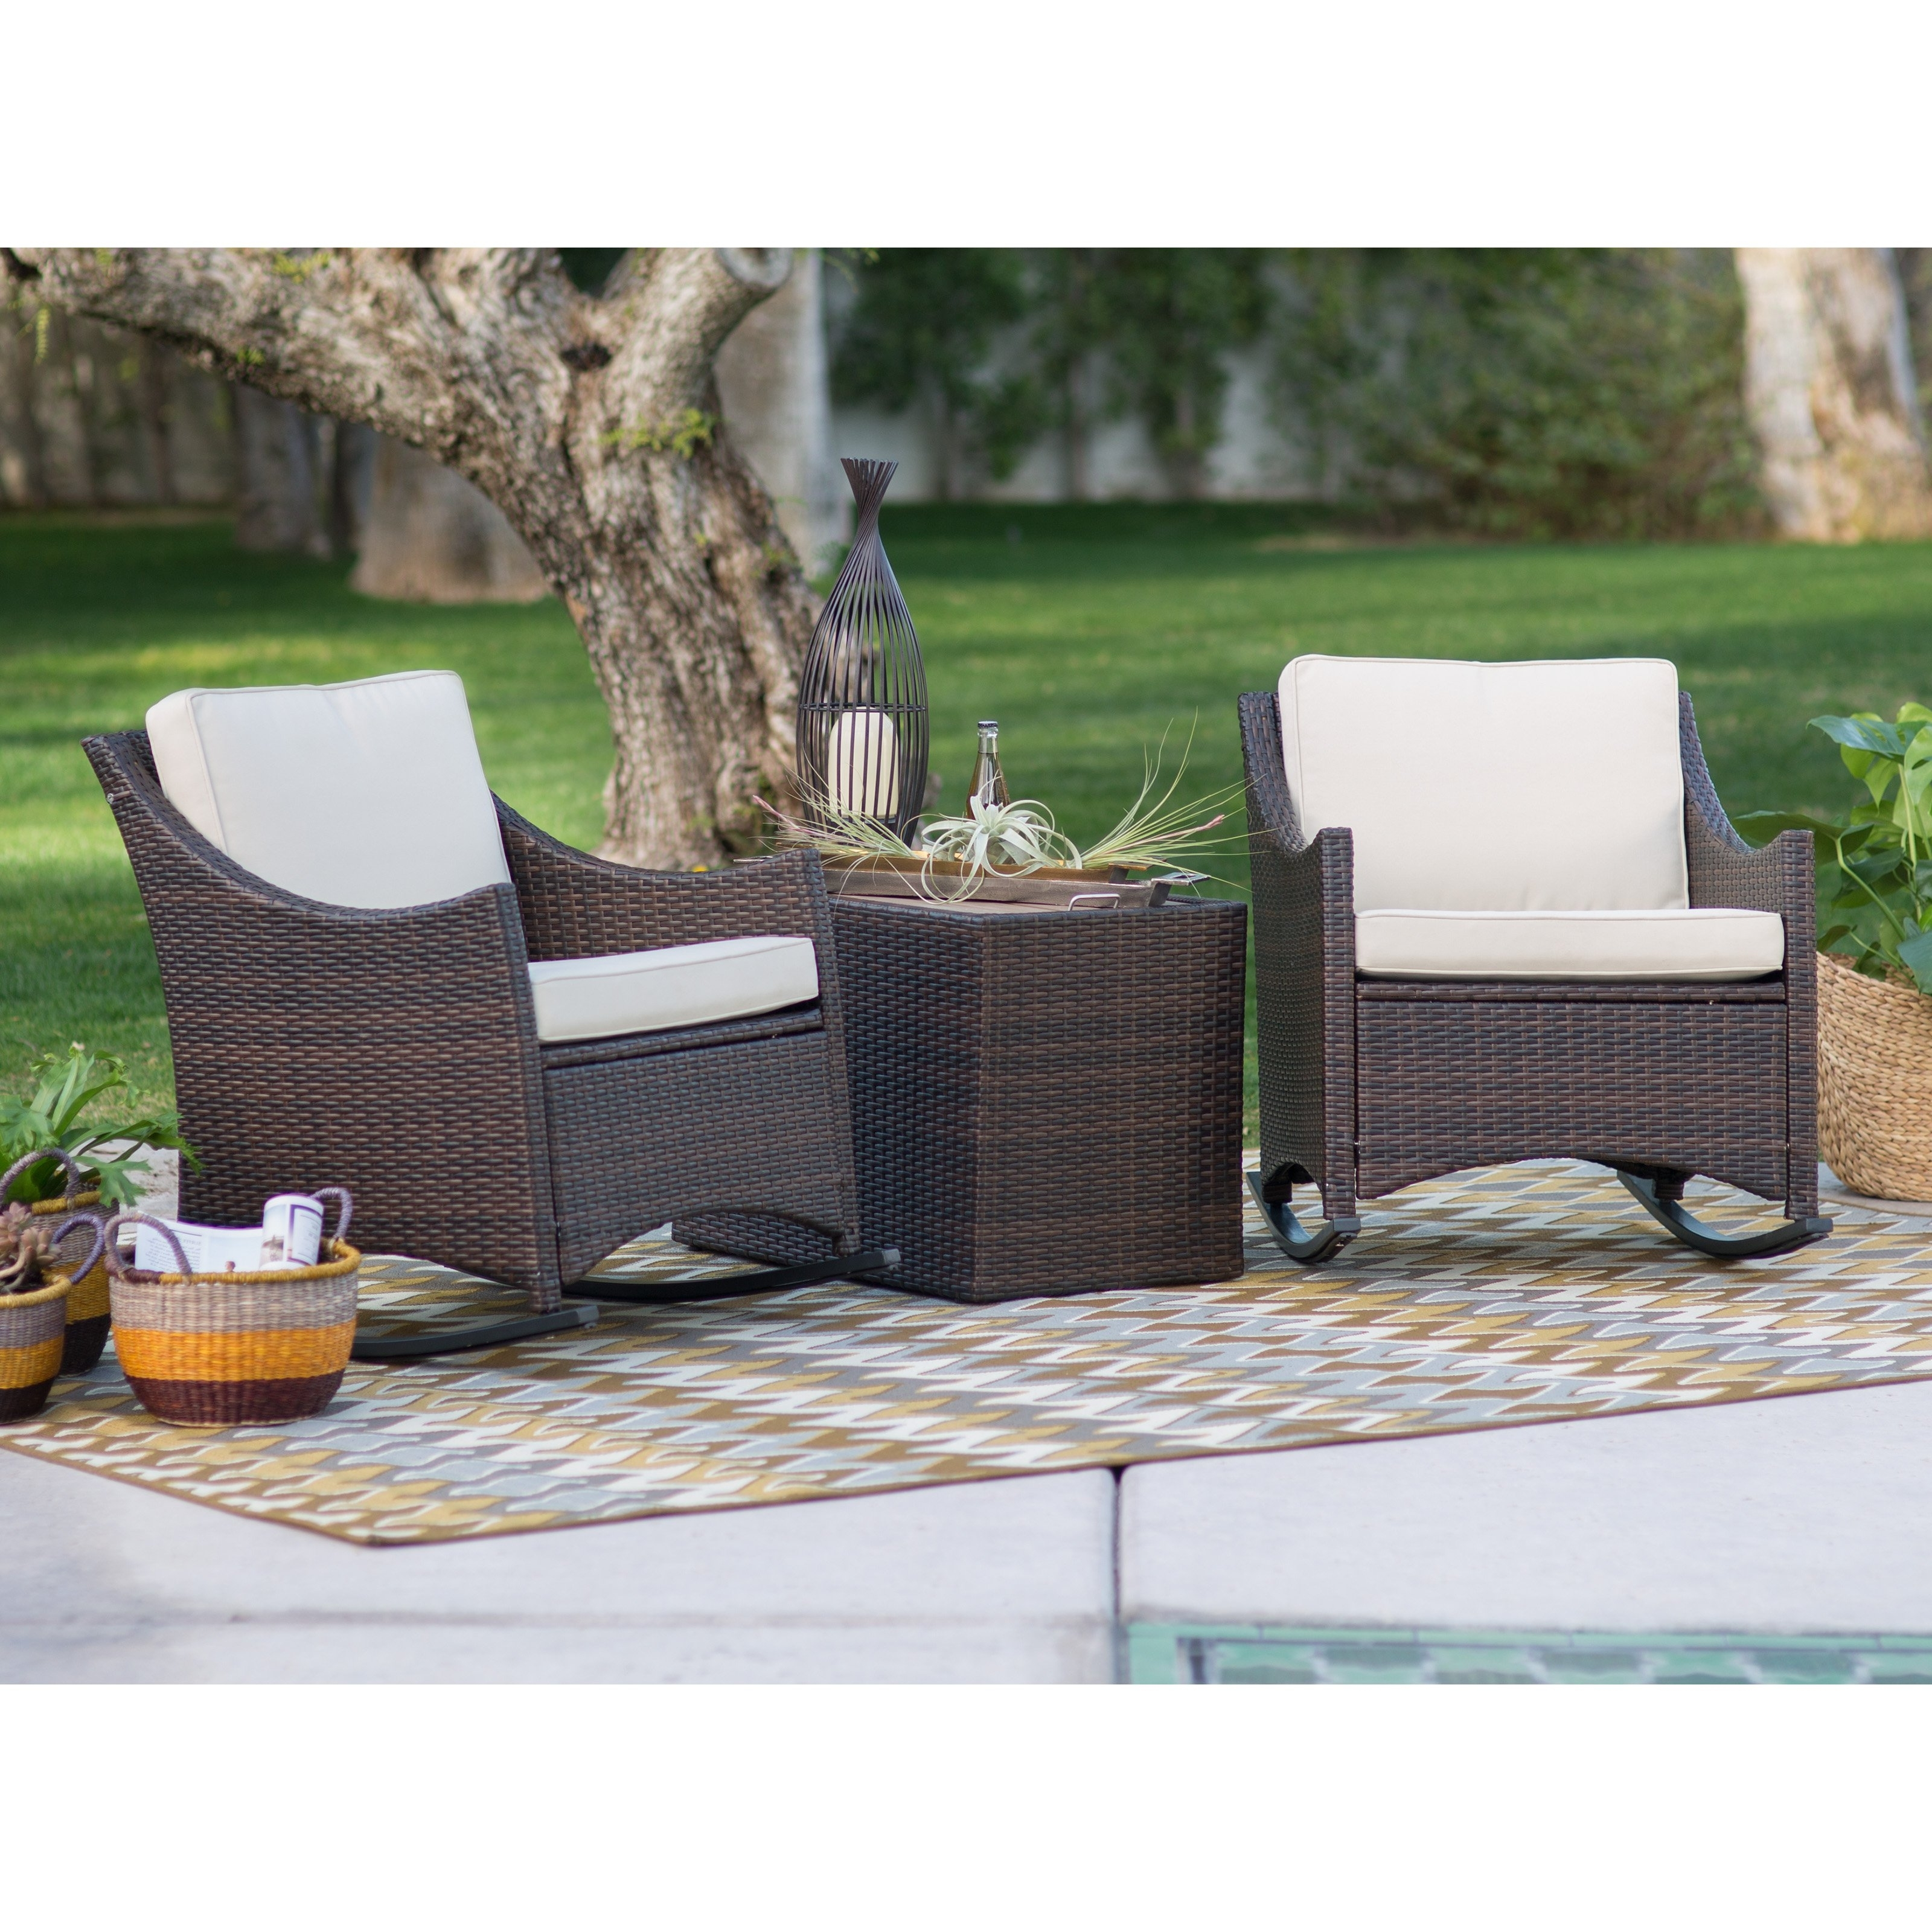 Fashionable Coral Coast Vega All Weather Wicker 4 Piece Conversation Set With With Regard To 3 Piece Patio Conversation Sets (View 6 of 15)